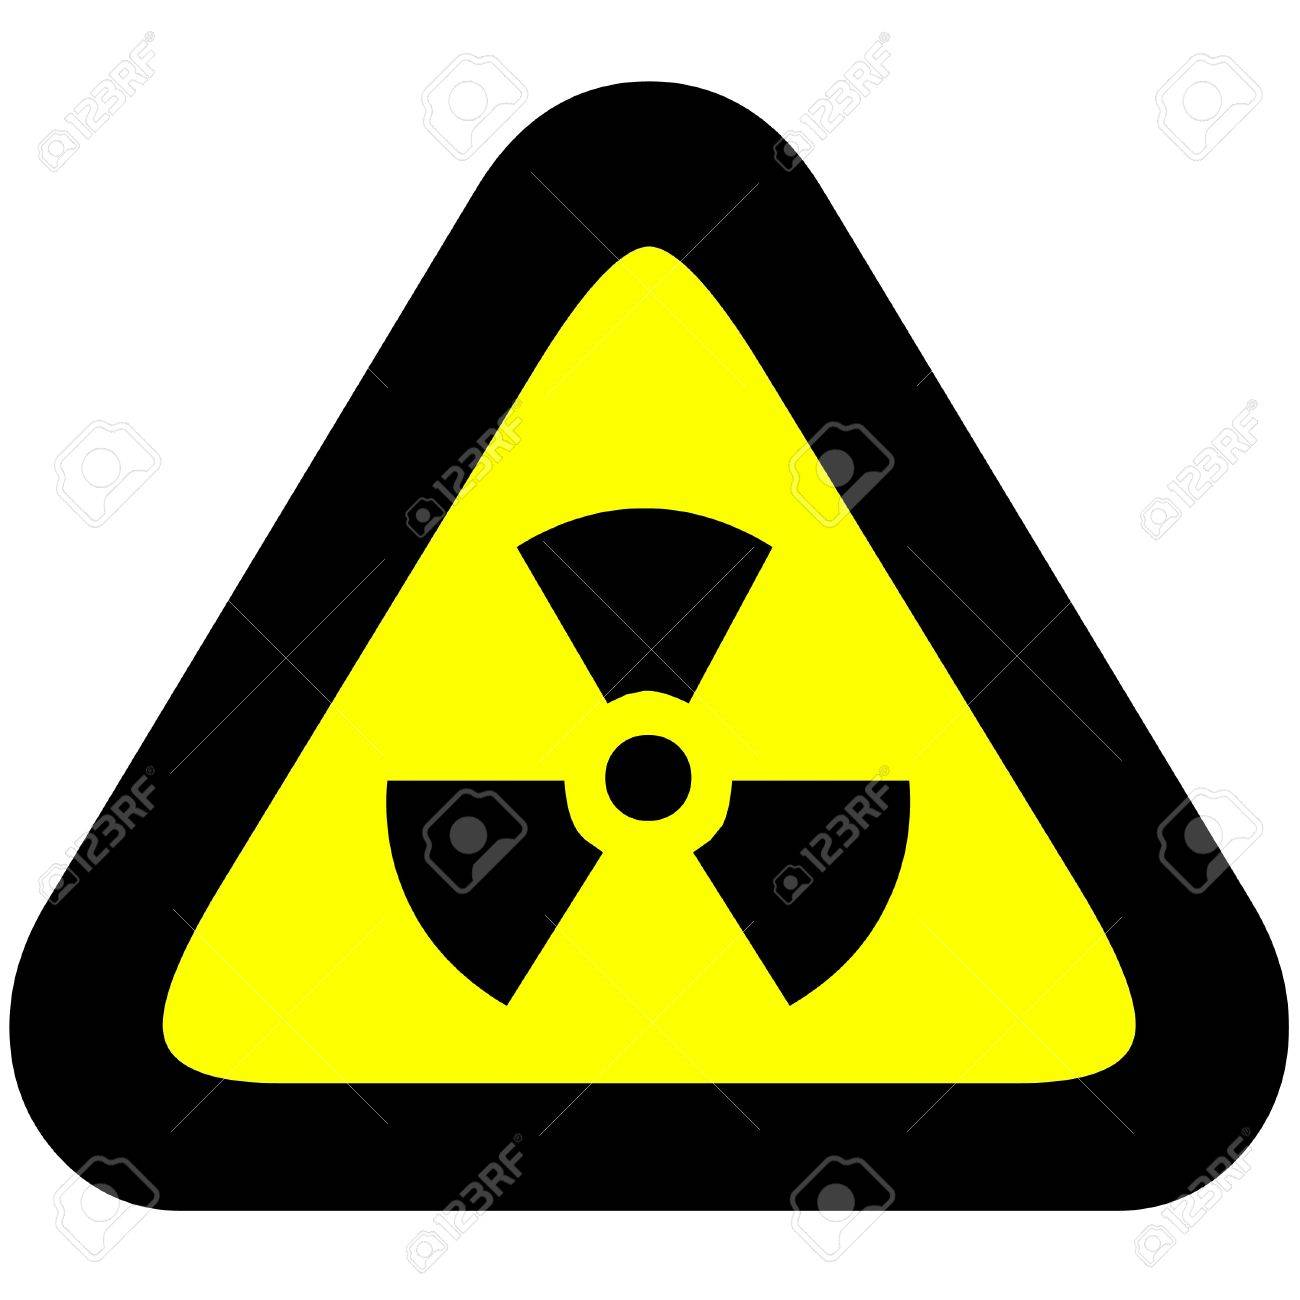 Radioactivity warning hazard sign. Stock Photo - 17078298